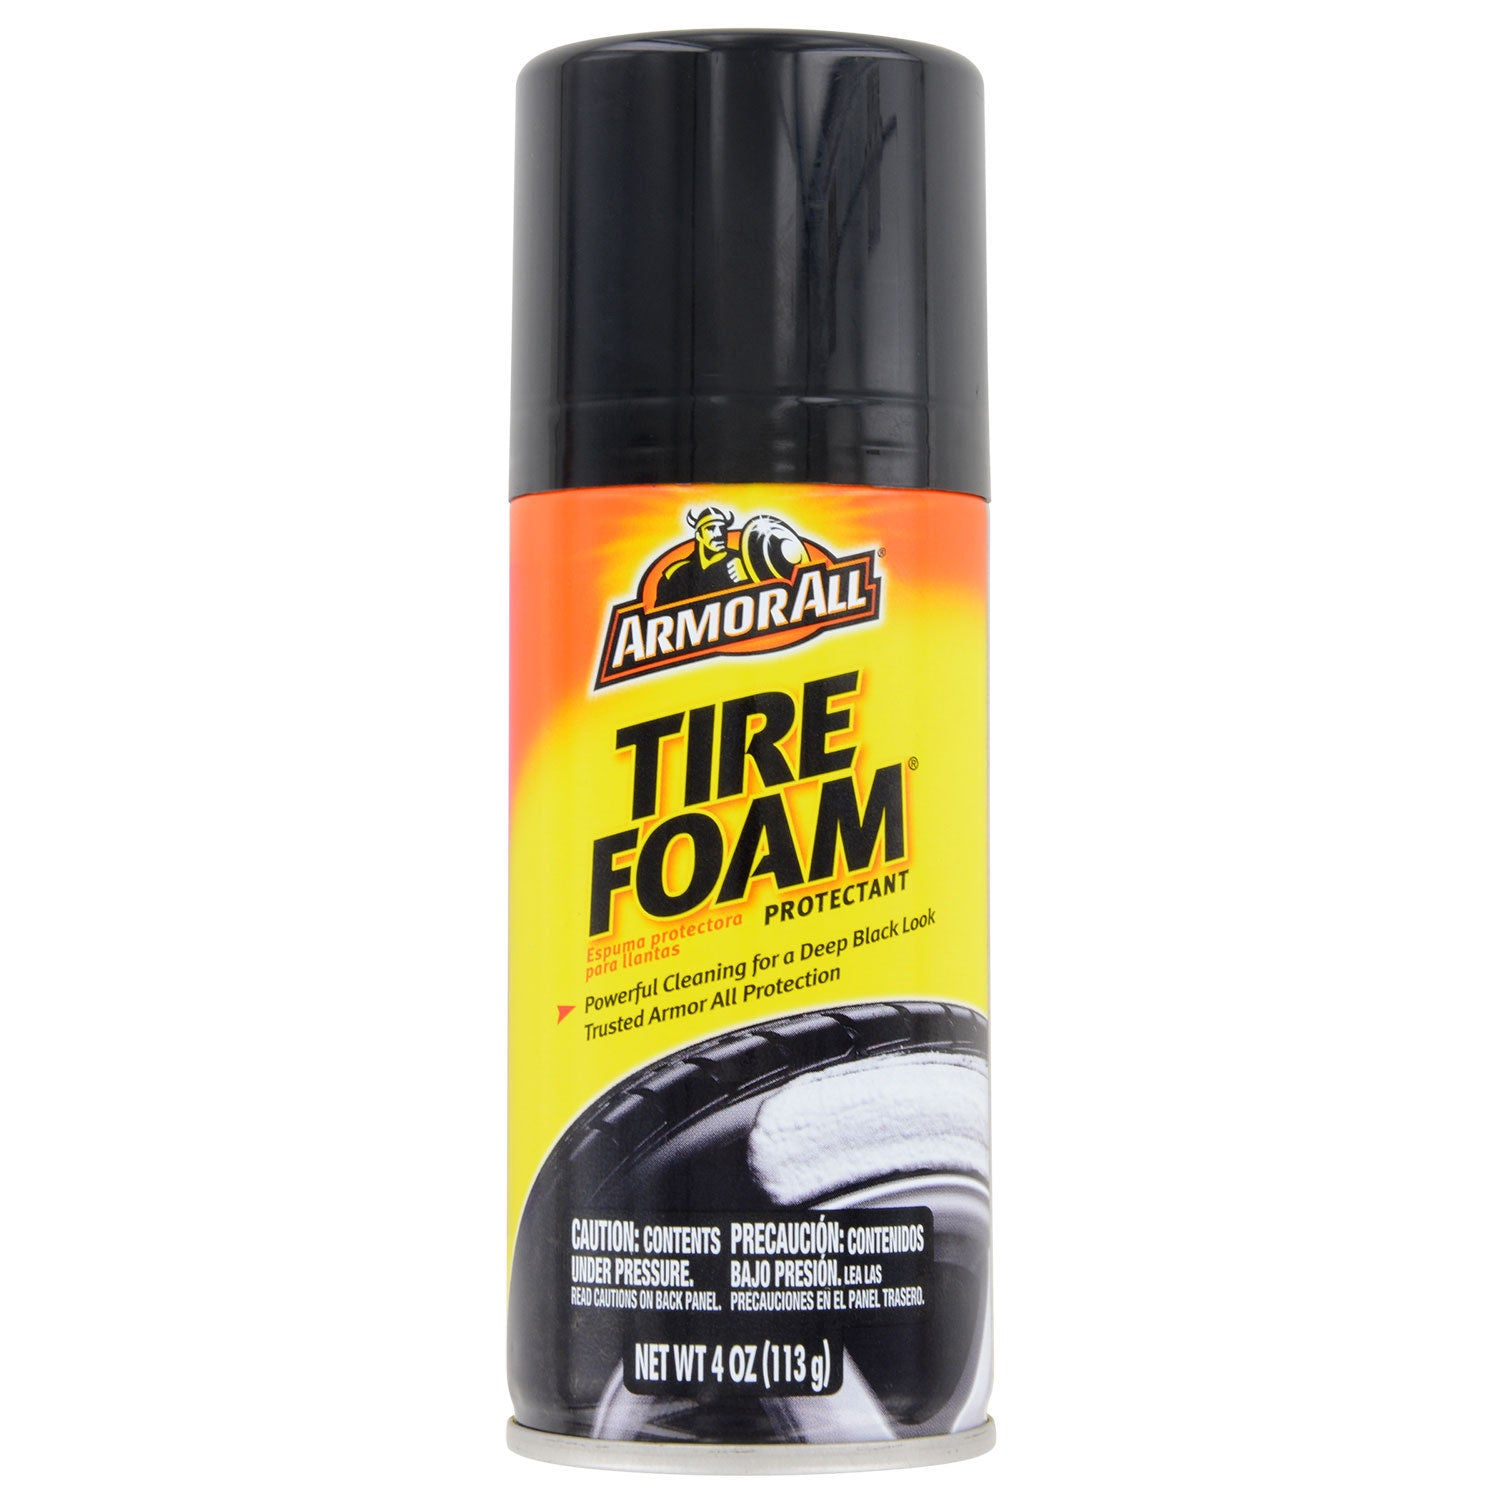 ArmorAll Tire Foam Can Safe, Diversion Safes,Cheeky Ninjas